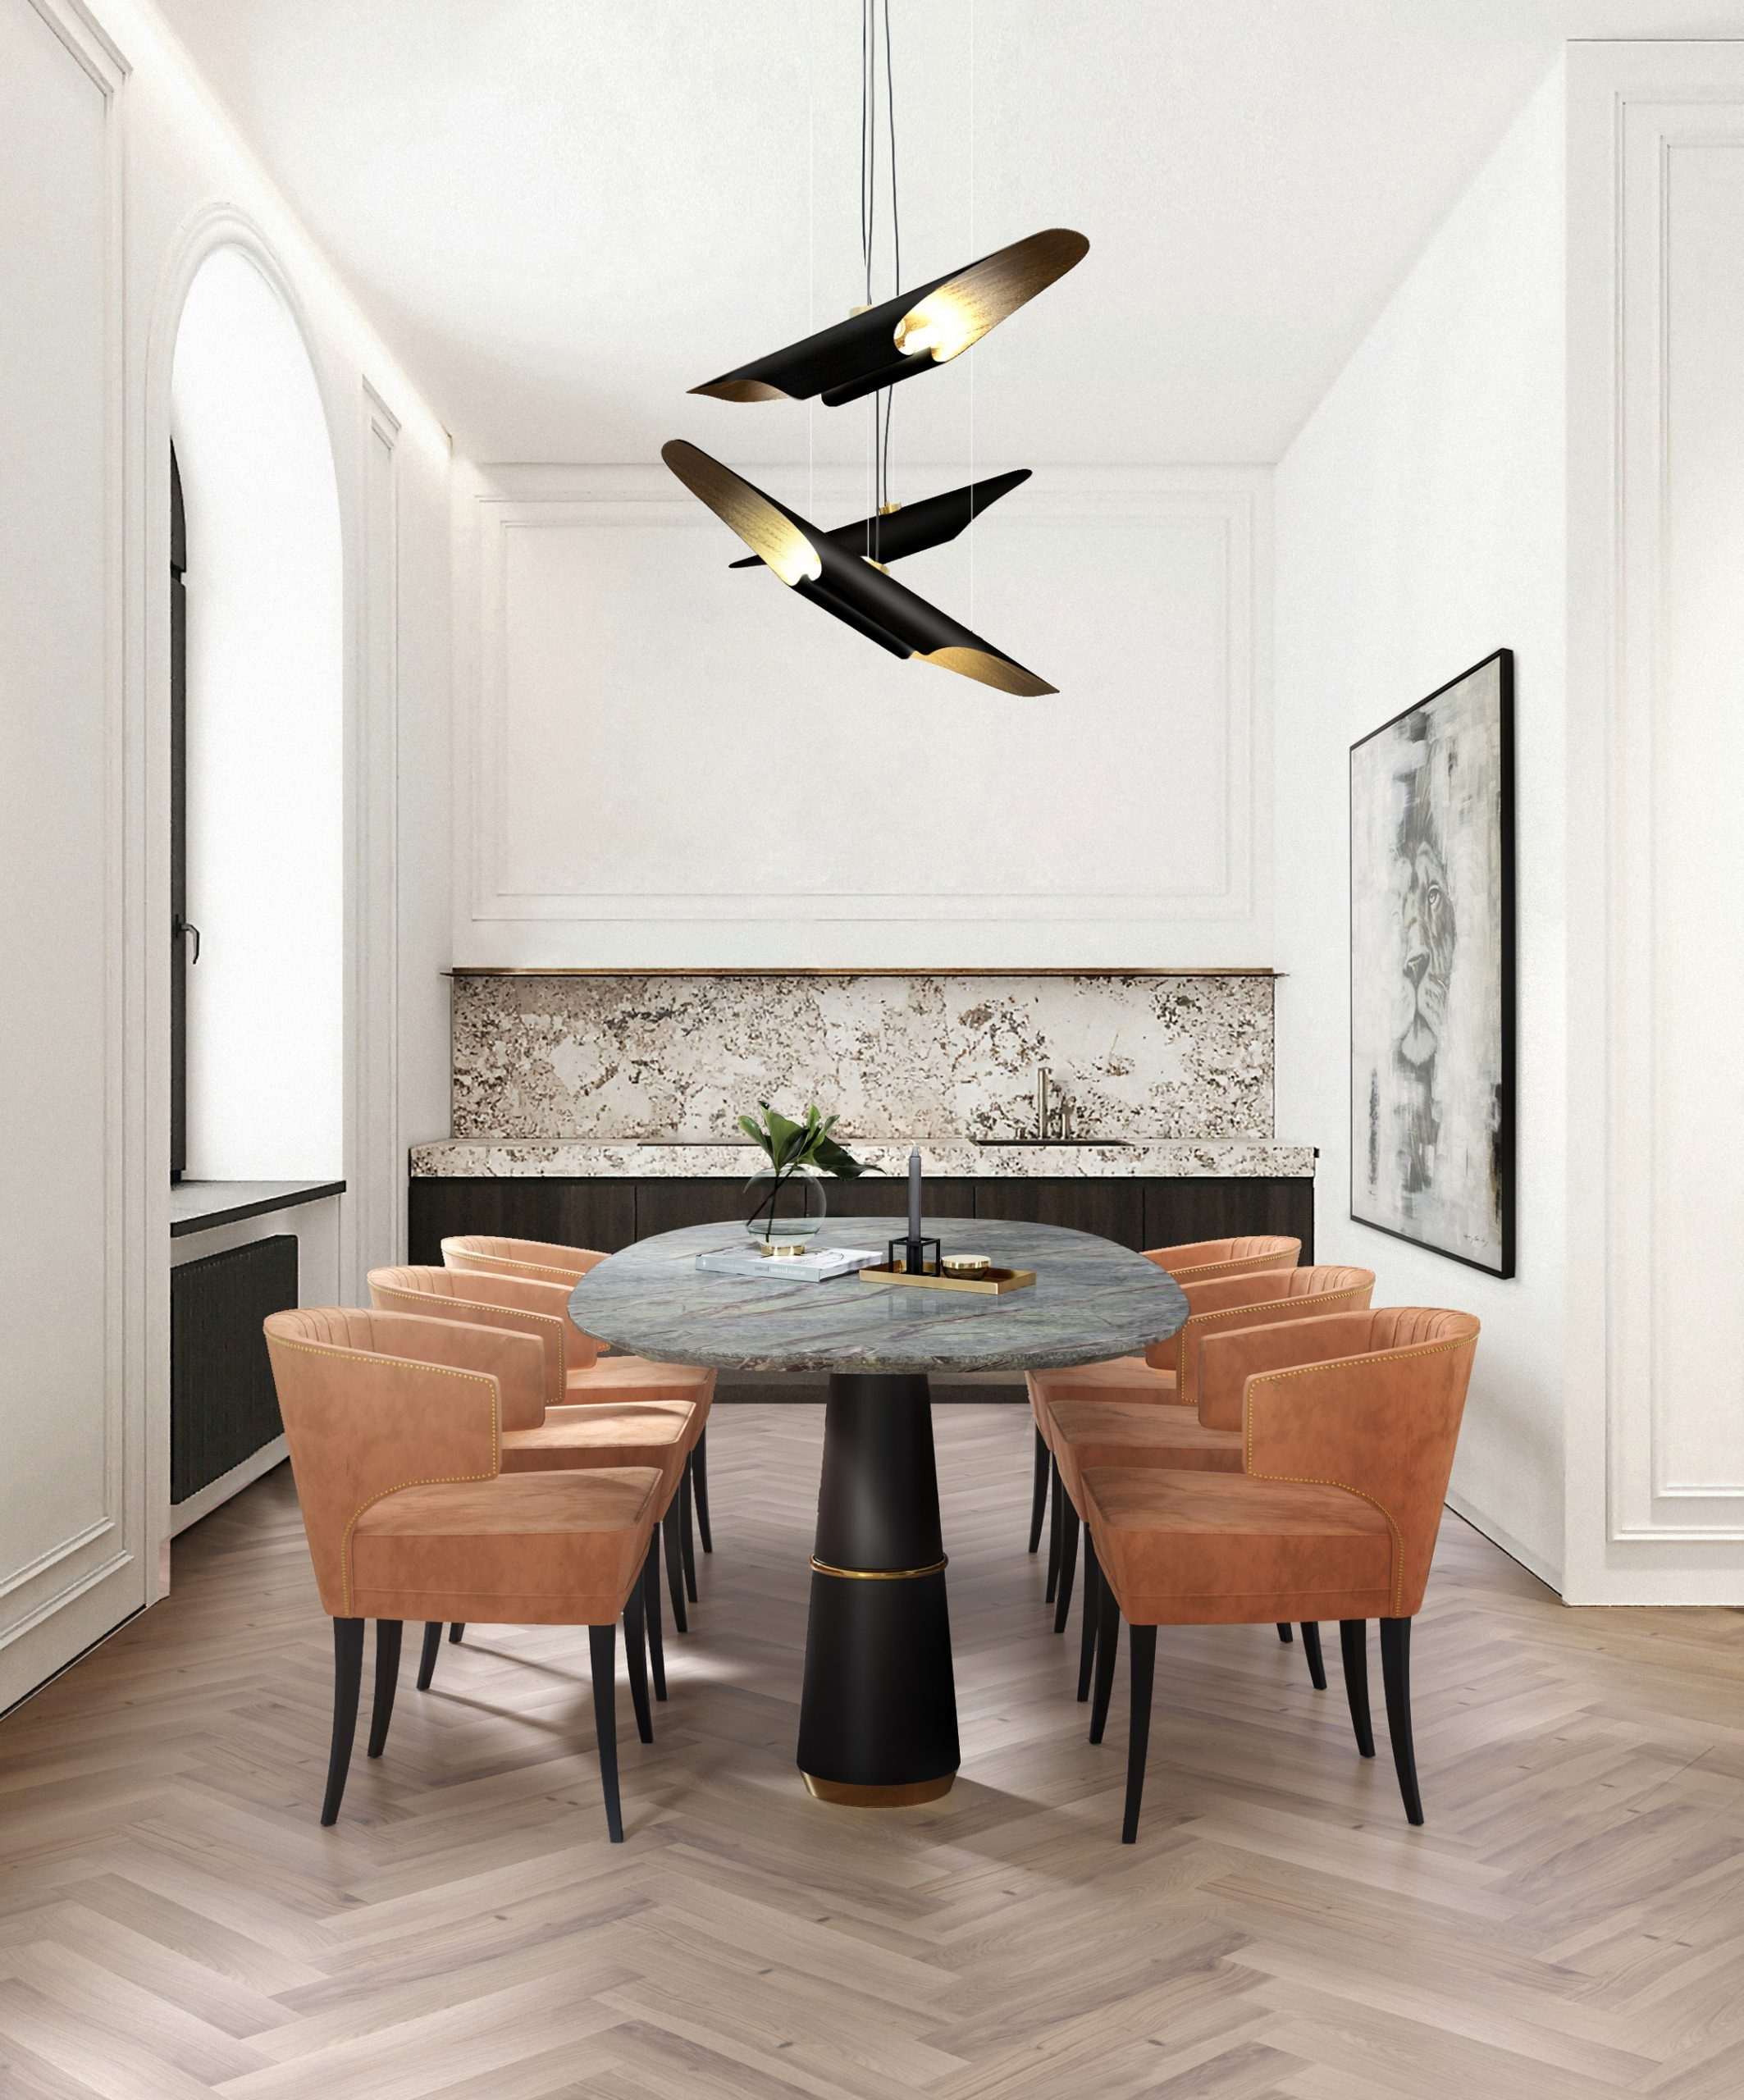 Let These Suspension Lamps be the Spotlight of Your Dining Table! suspension lamps Let These Suspension Lamps be the Spotlight of Your Dining Table! 1 7 scaled